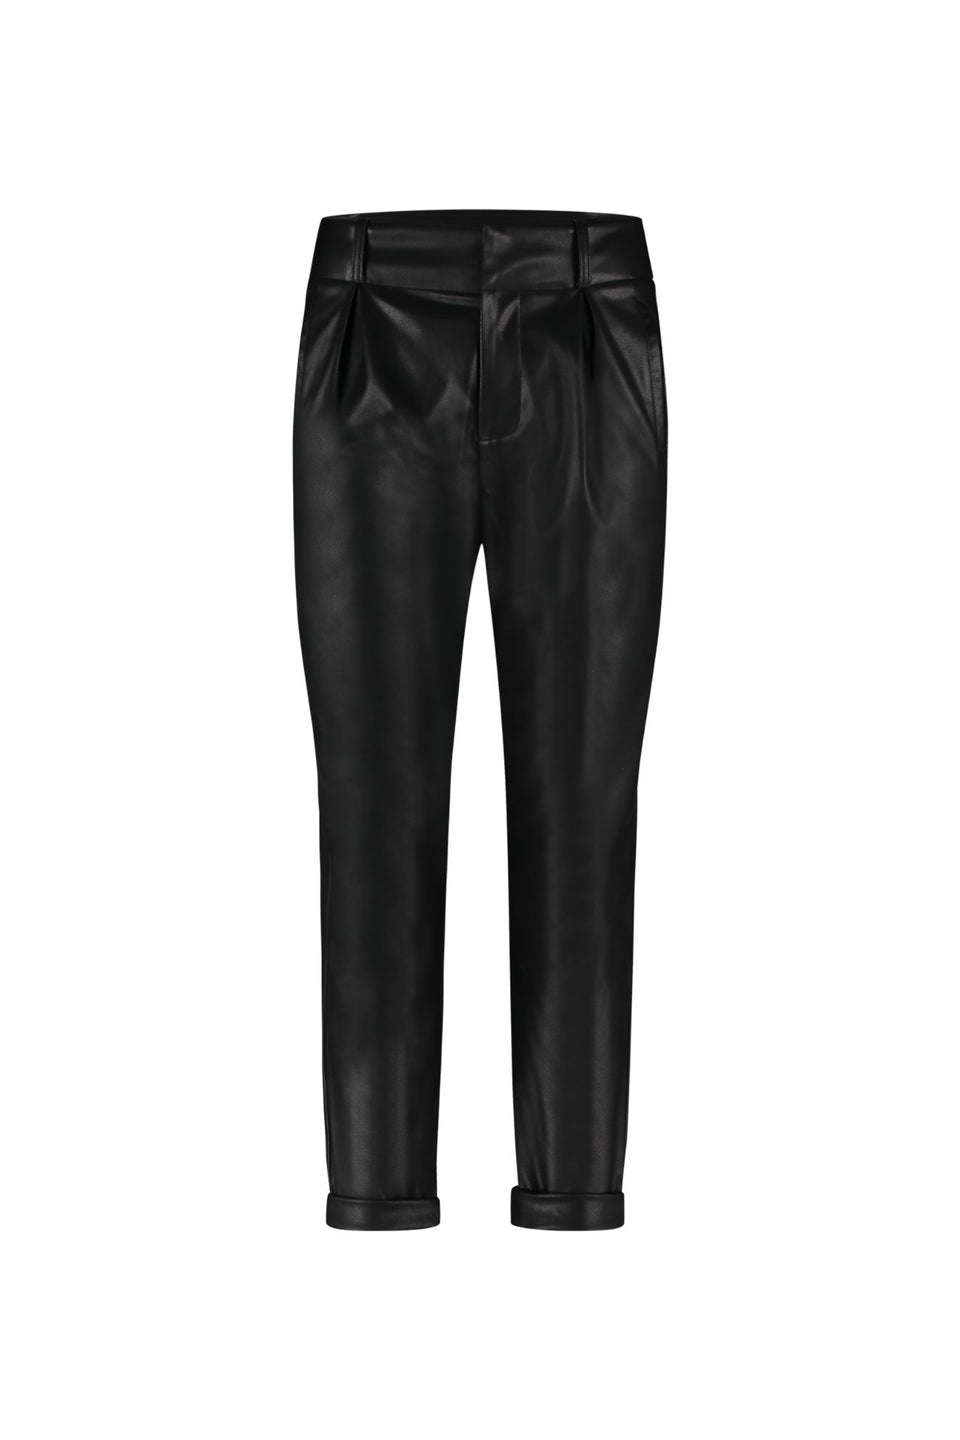 Parisa Pants - Black